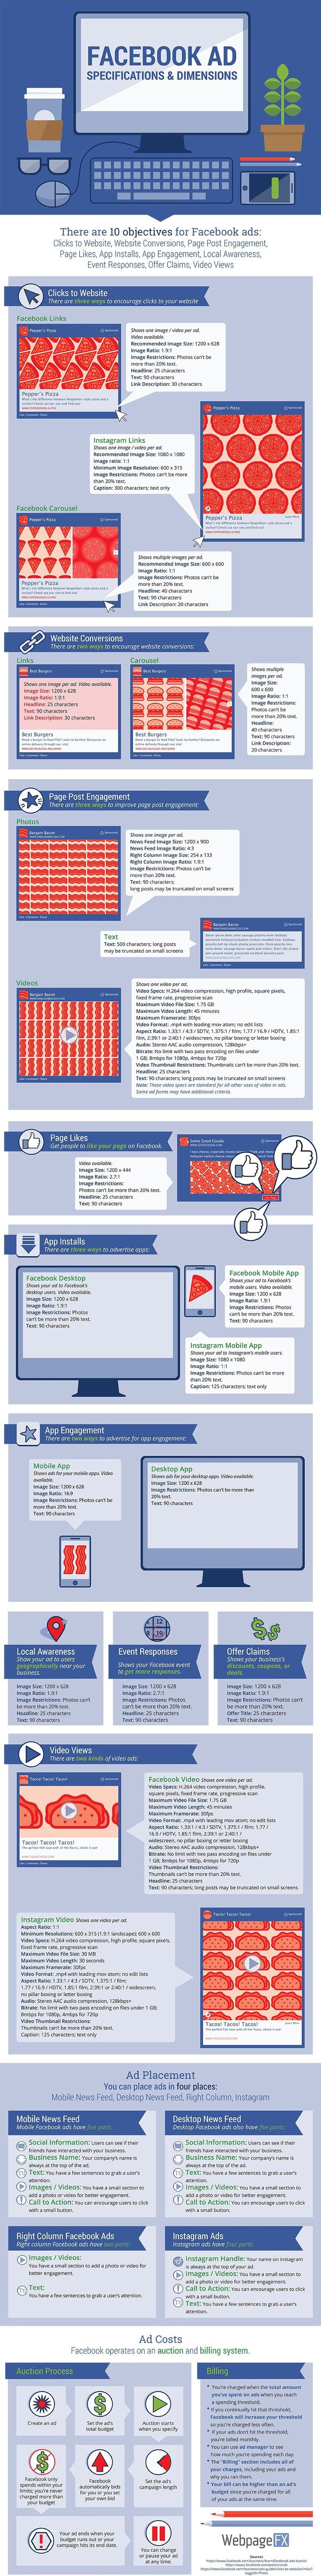 Facebook ad specs and dimensions